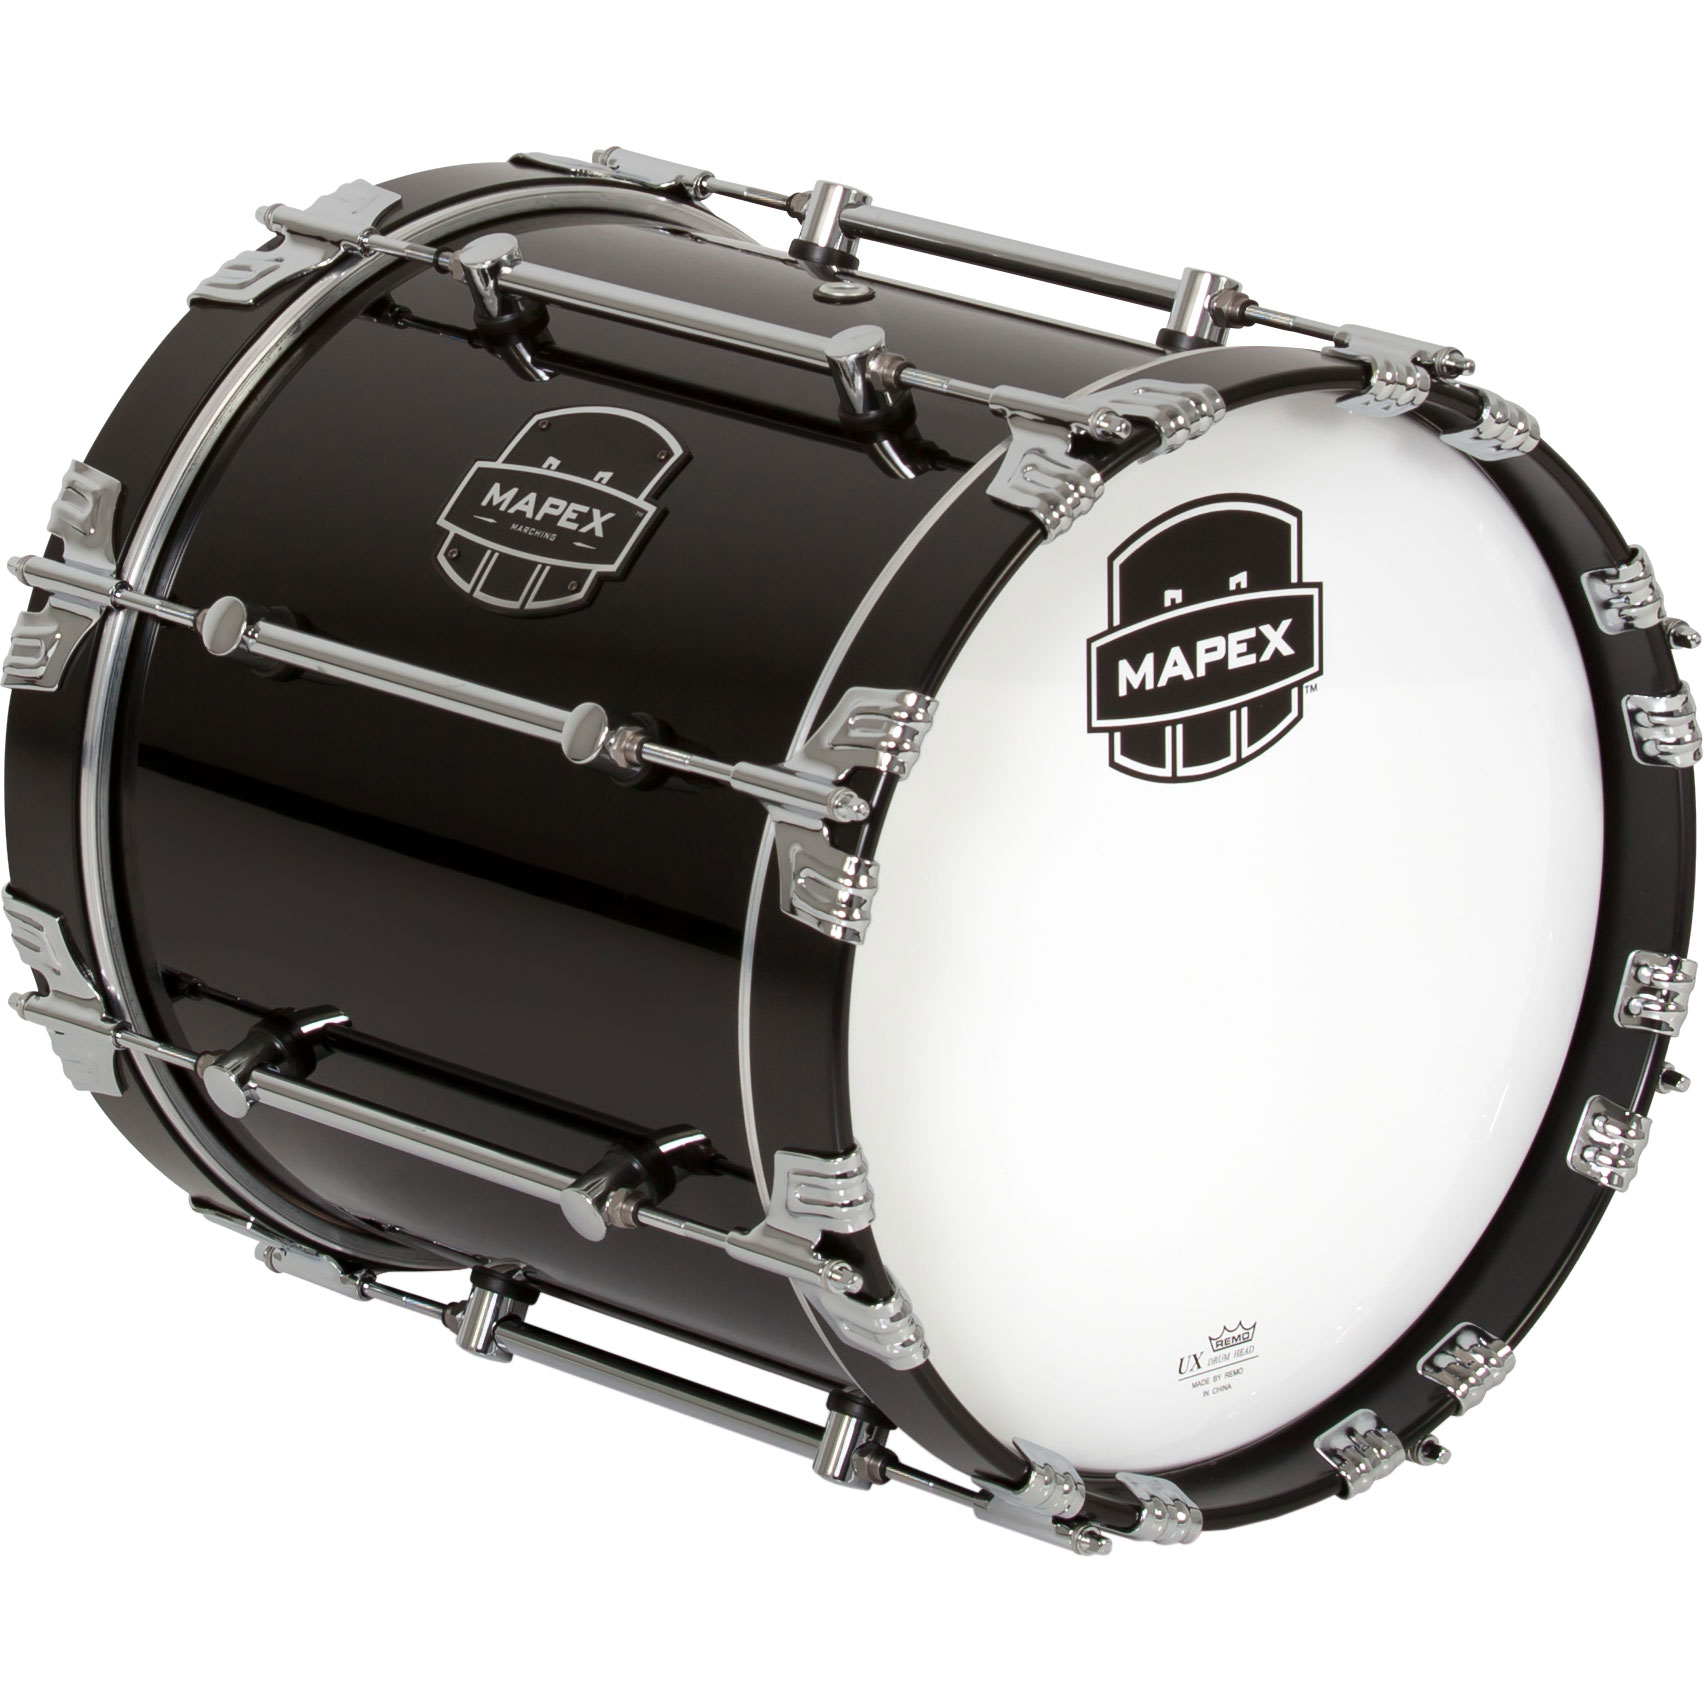 "Mapex 18"" x 14"" Quantum Mark II Marching Bass Drum in Gloss Black"